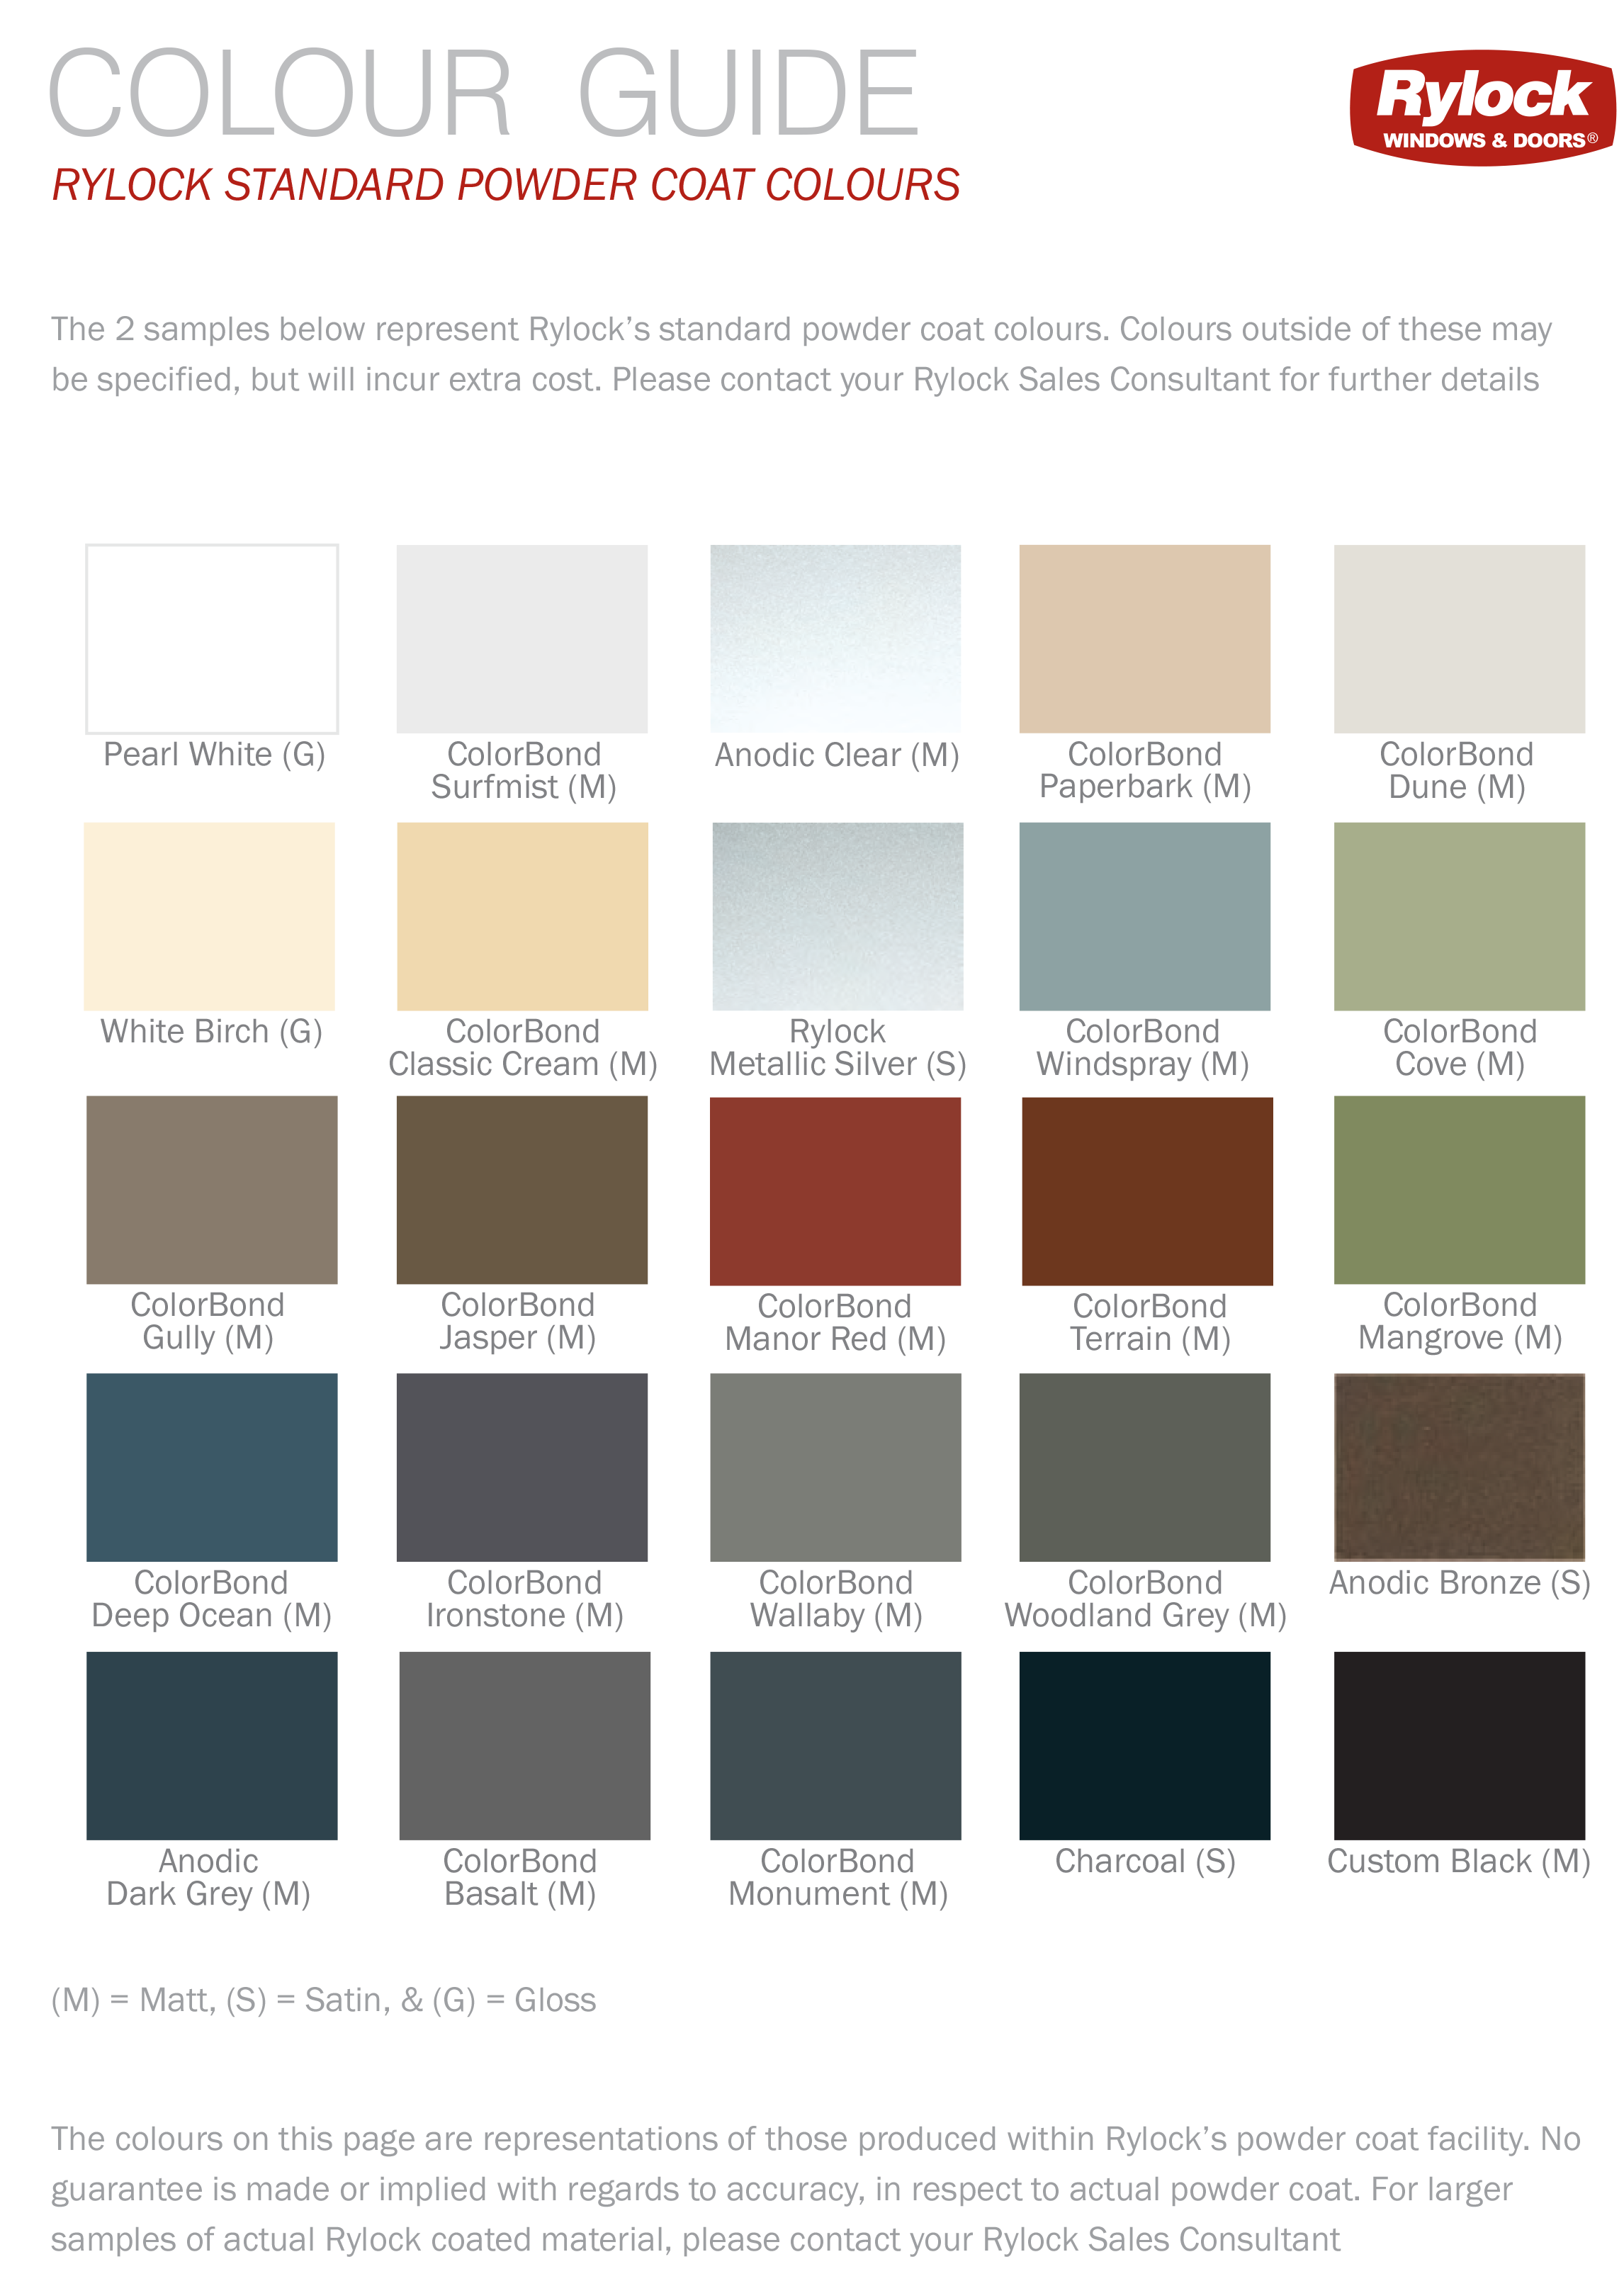 rylock-colour-chart-1